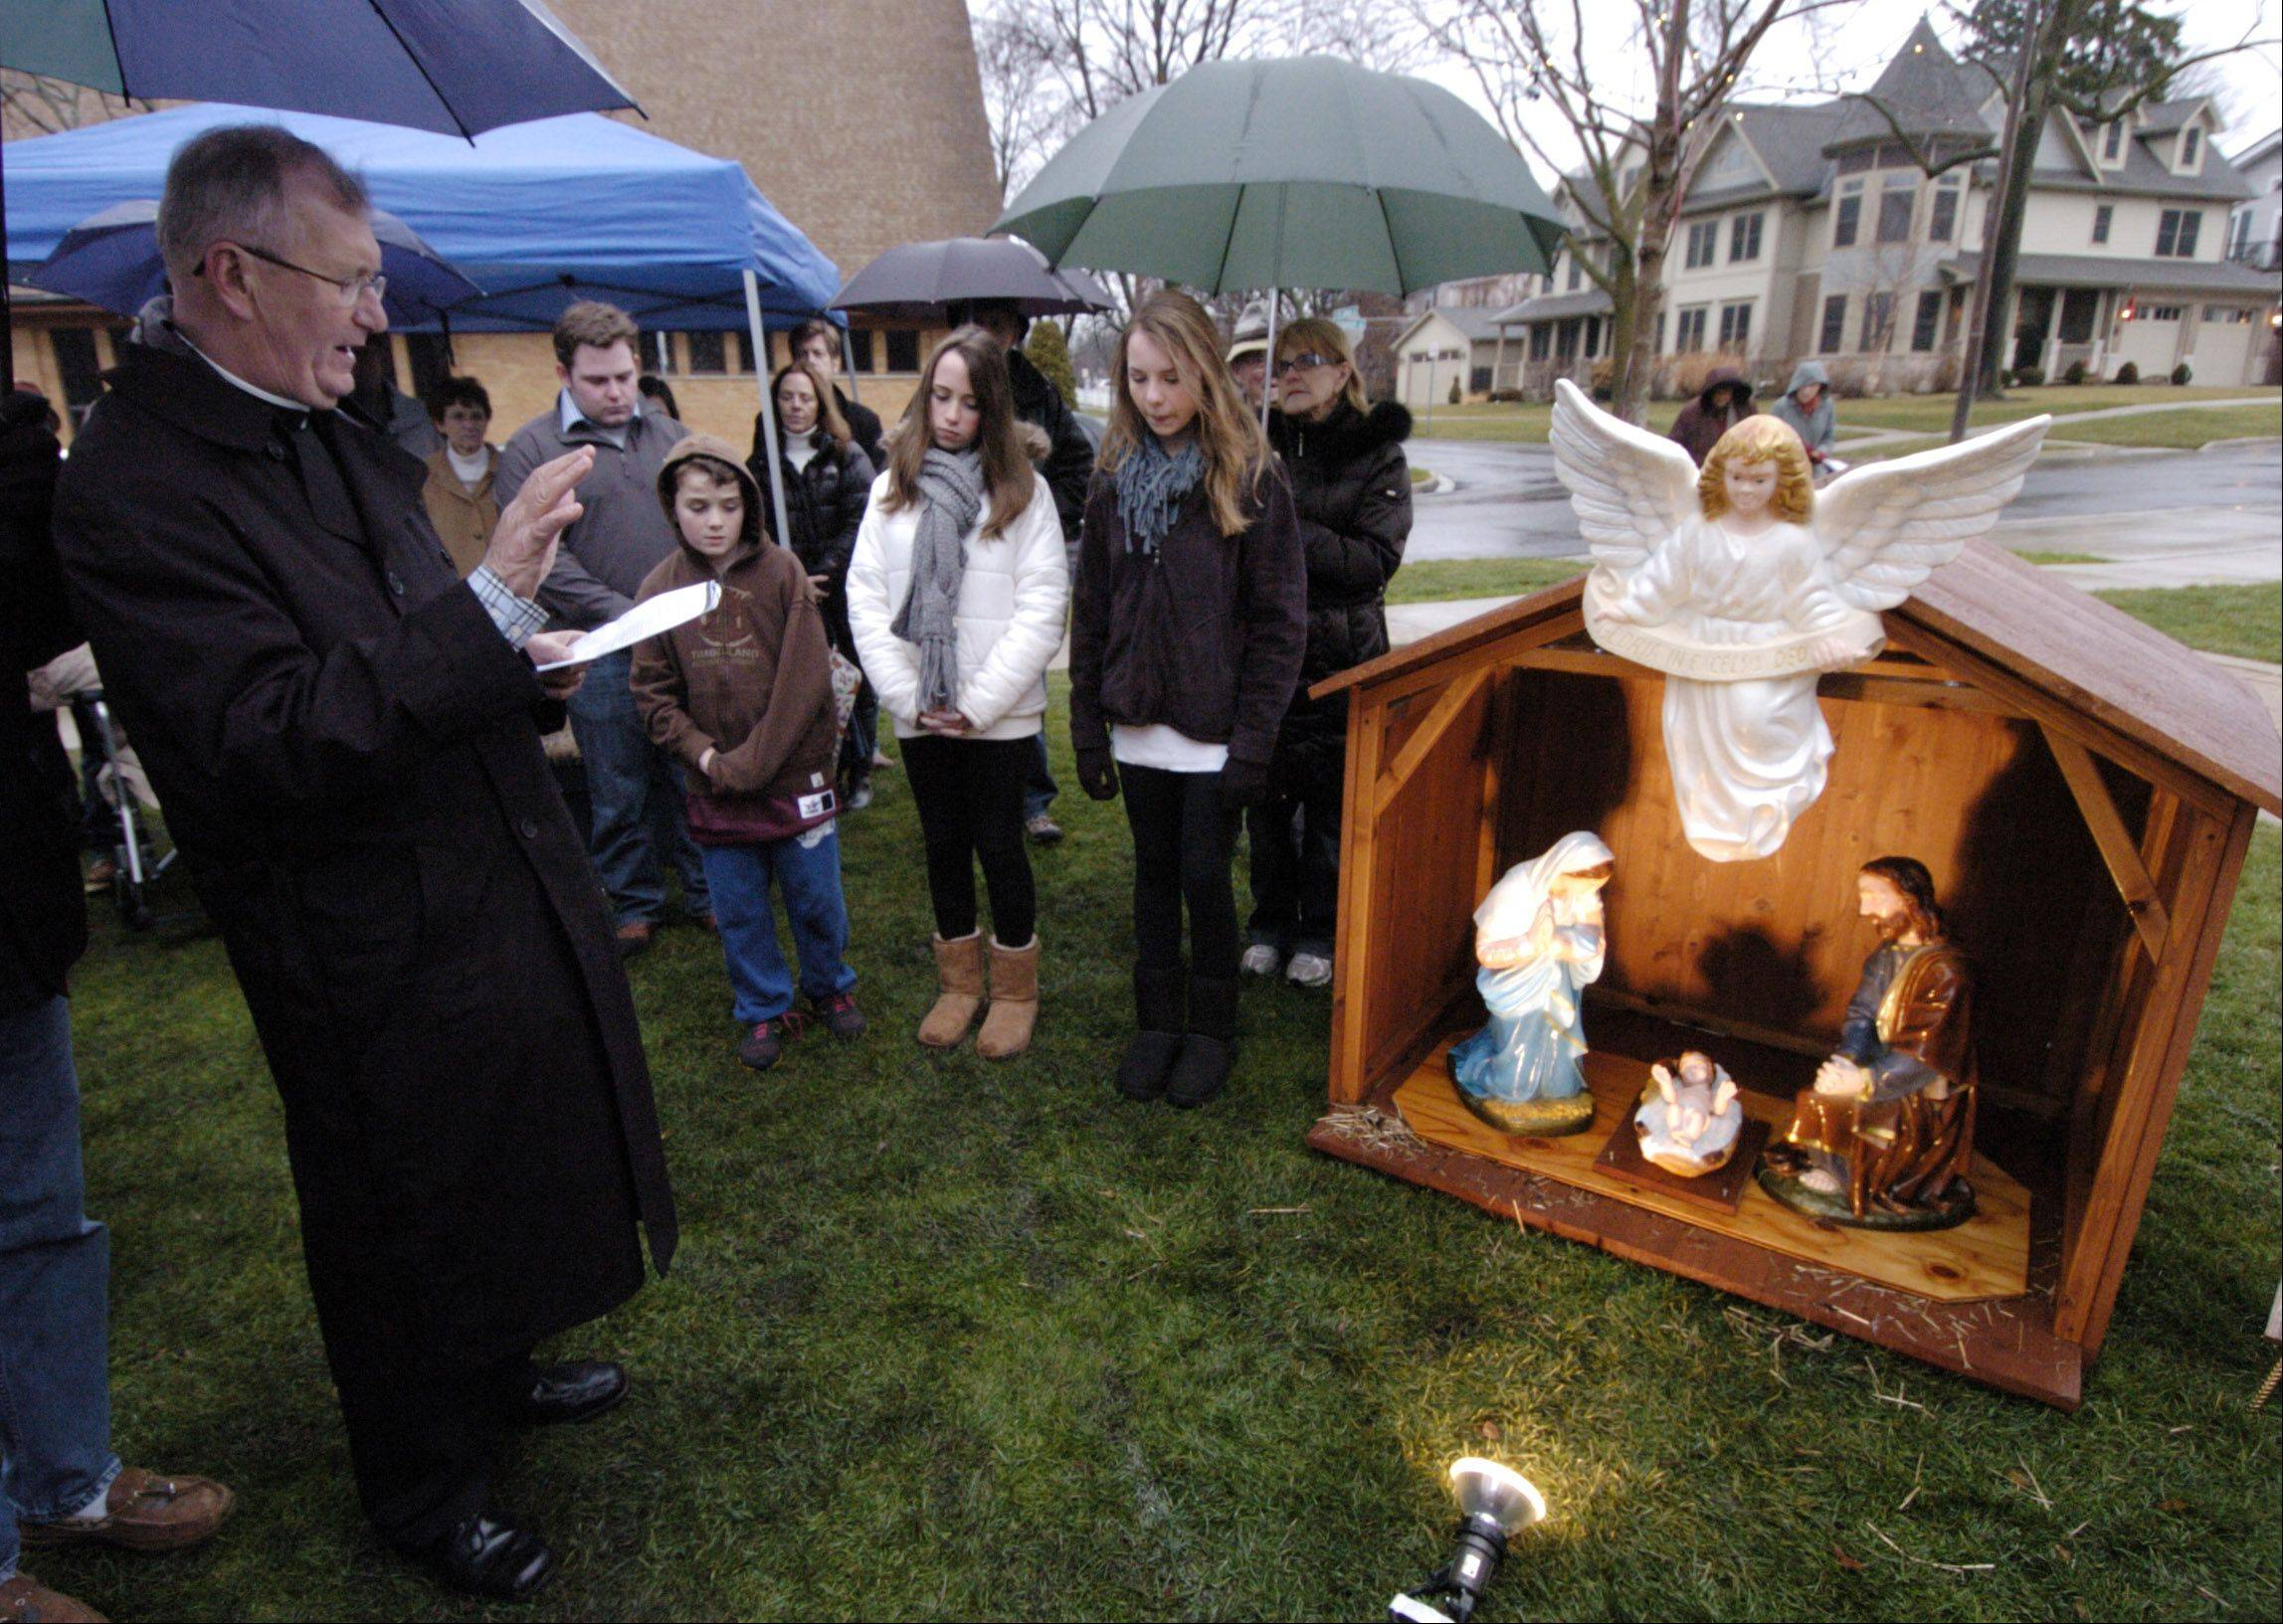 Father Bill Zavaski, pastor of St. James Catholic Church in Arlington Heights, blesses the Nativity scene that was added to the North School Park holiday display in 2012.